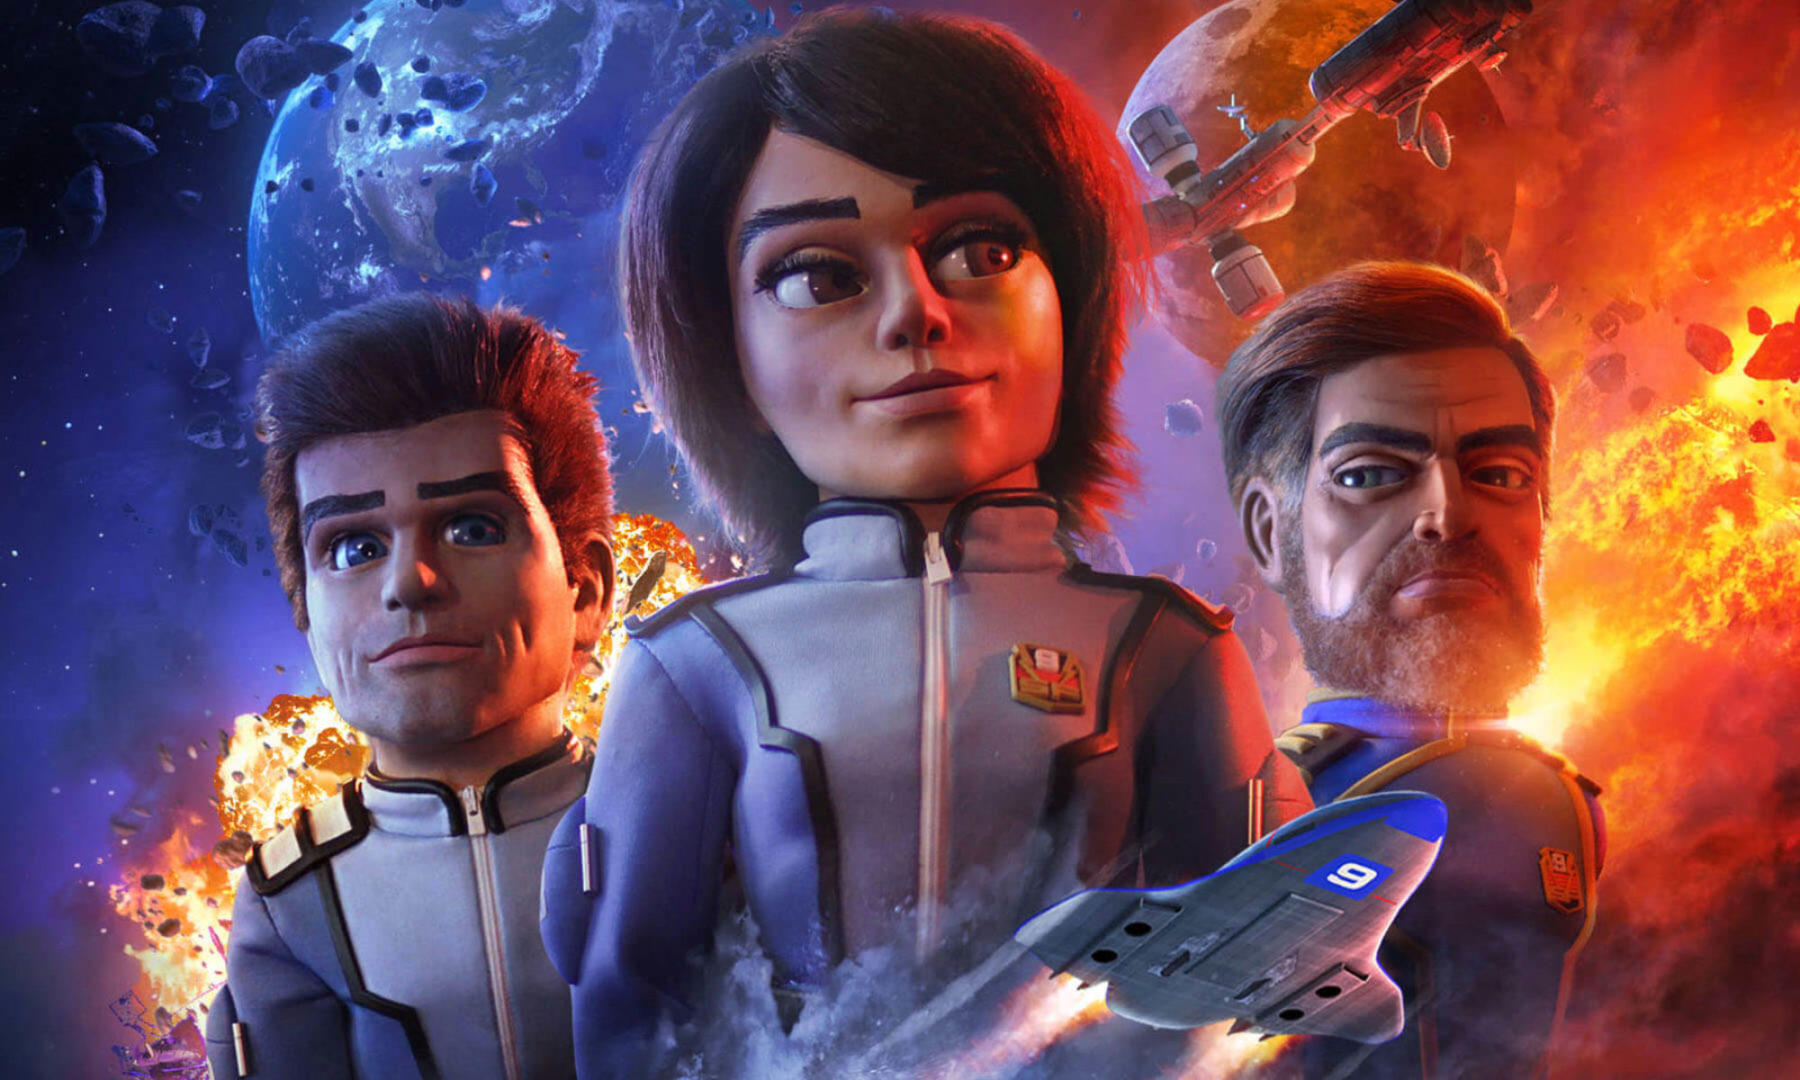 In October Anderson Entertainment premiered their pilot minisode for Firestorm filmed in 'Ultramarionation'.